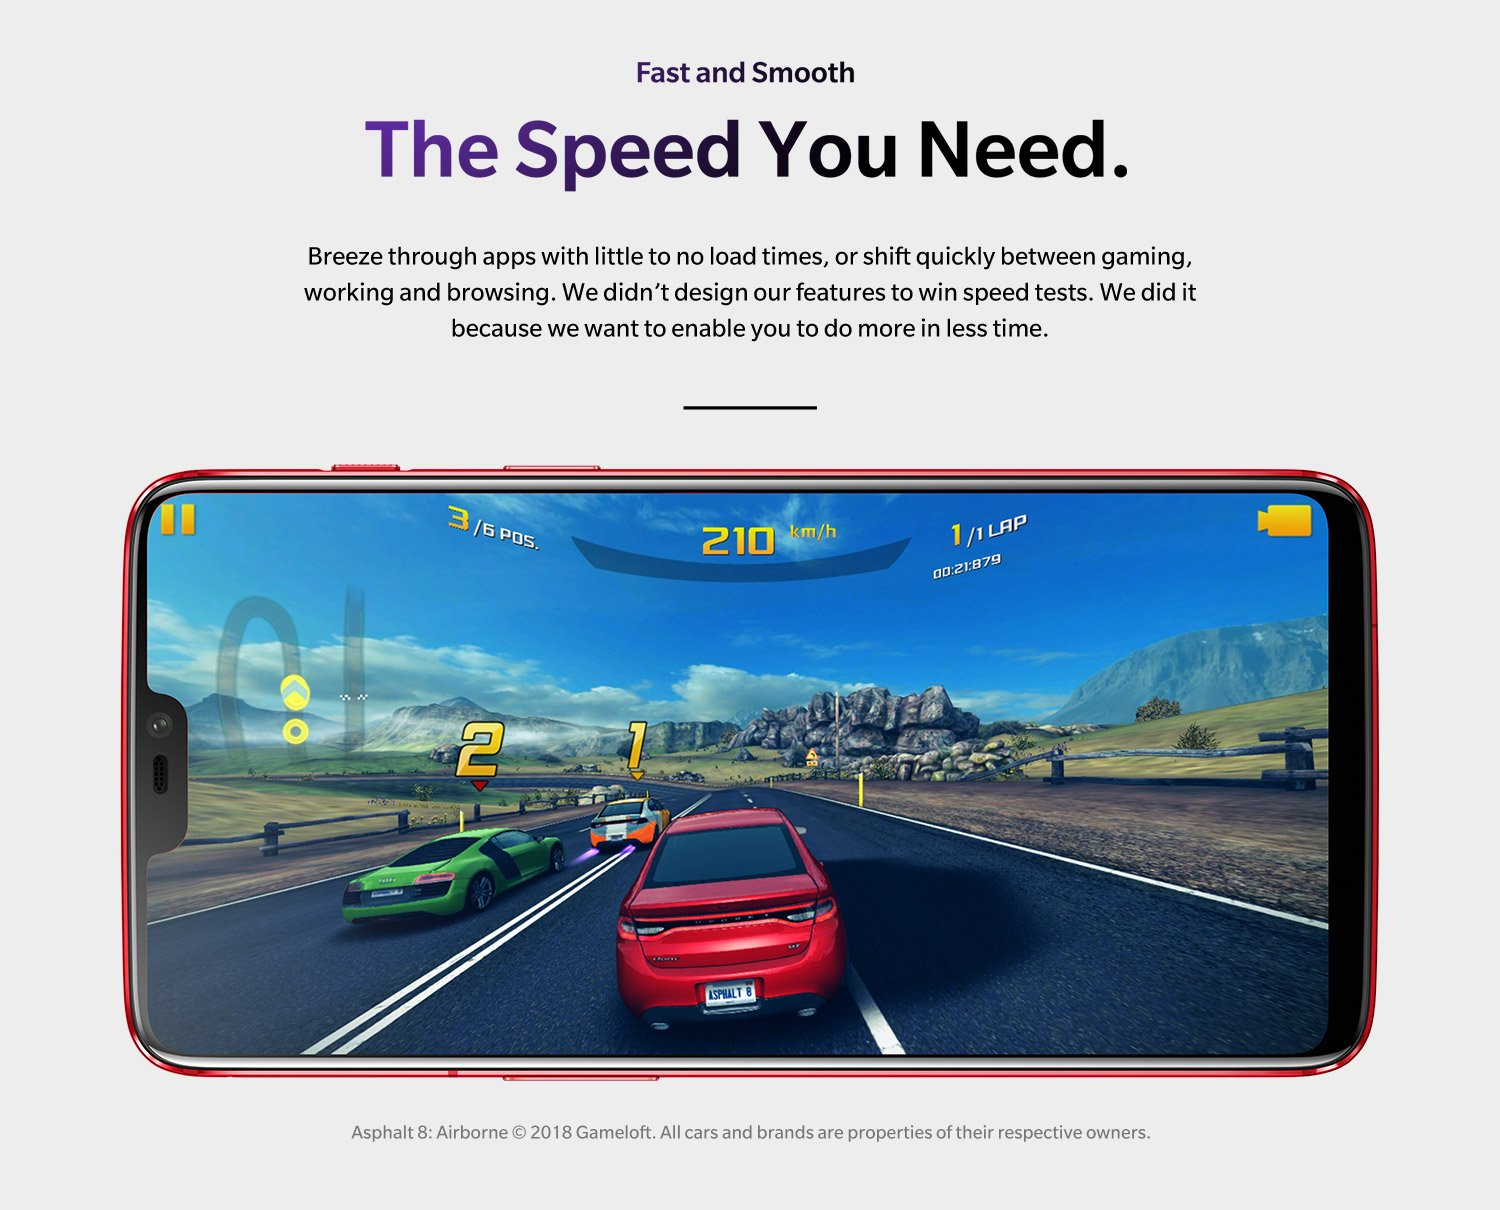 Speed you need